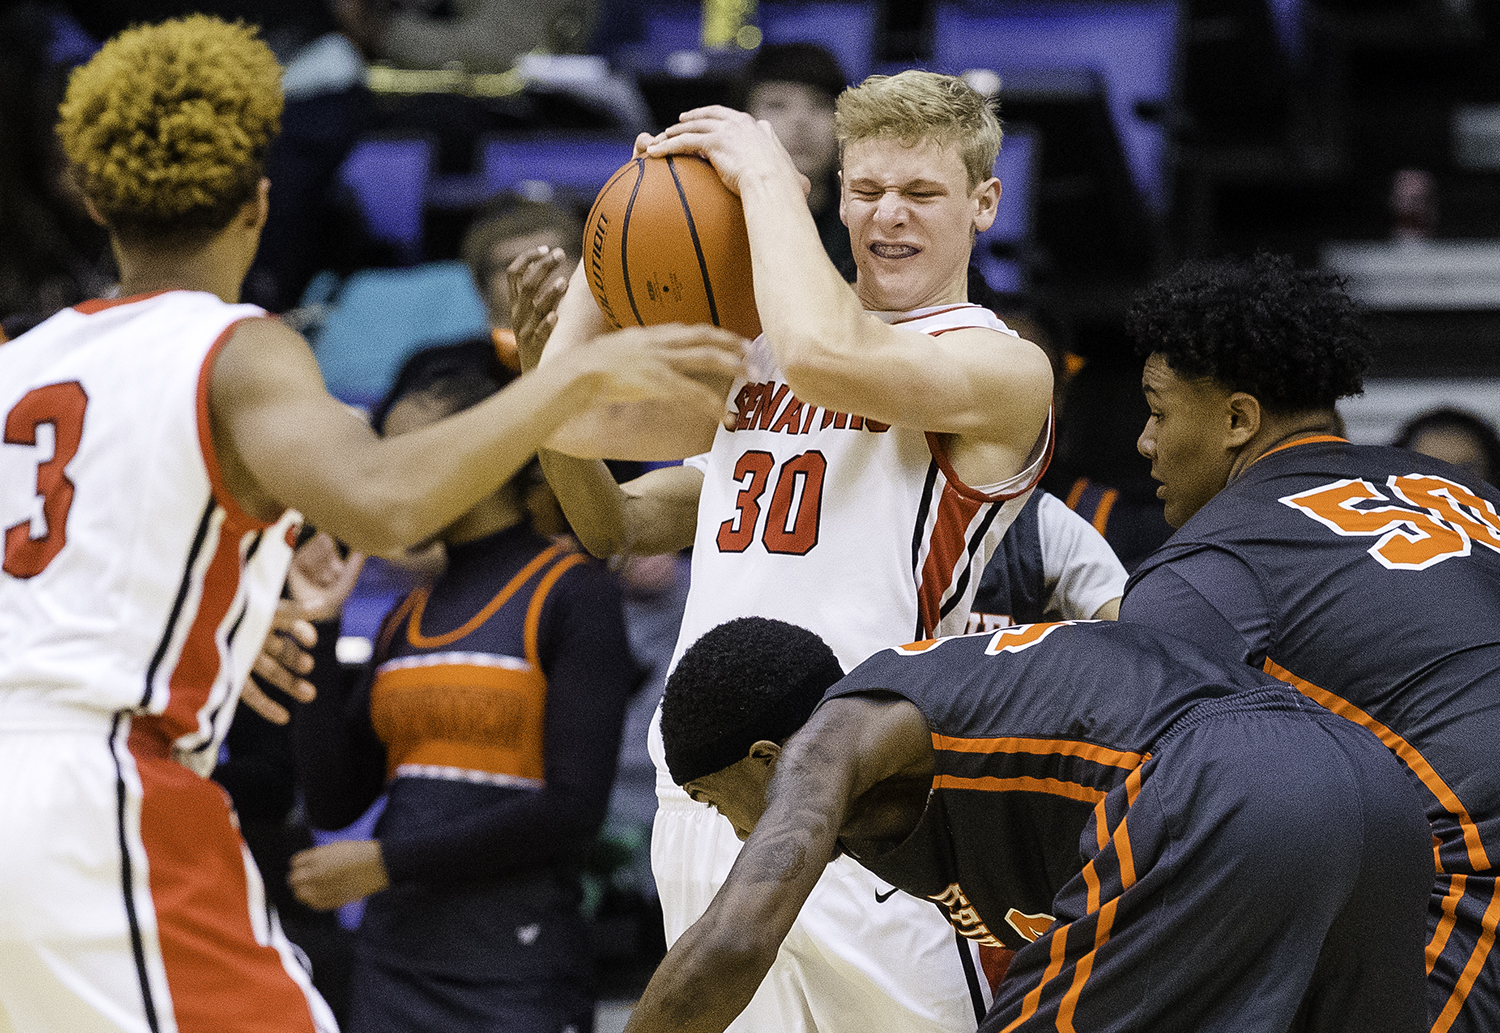 Springfield's Will Reiser fights for the ball against Lanphier during the Boys City Tournament at the Bank of Springfield Center Thursday, Jan. 18, 2018. [Ted Schurter/The State Journal-Register]